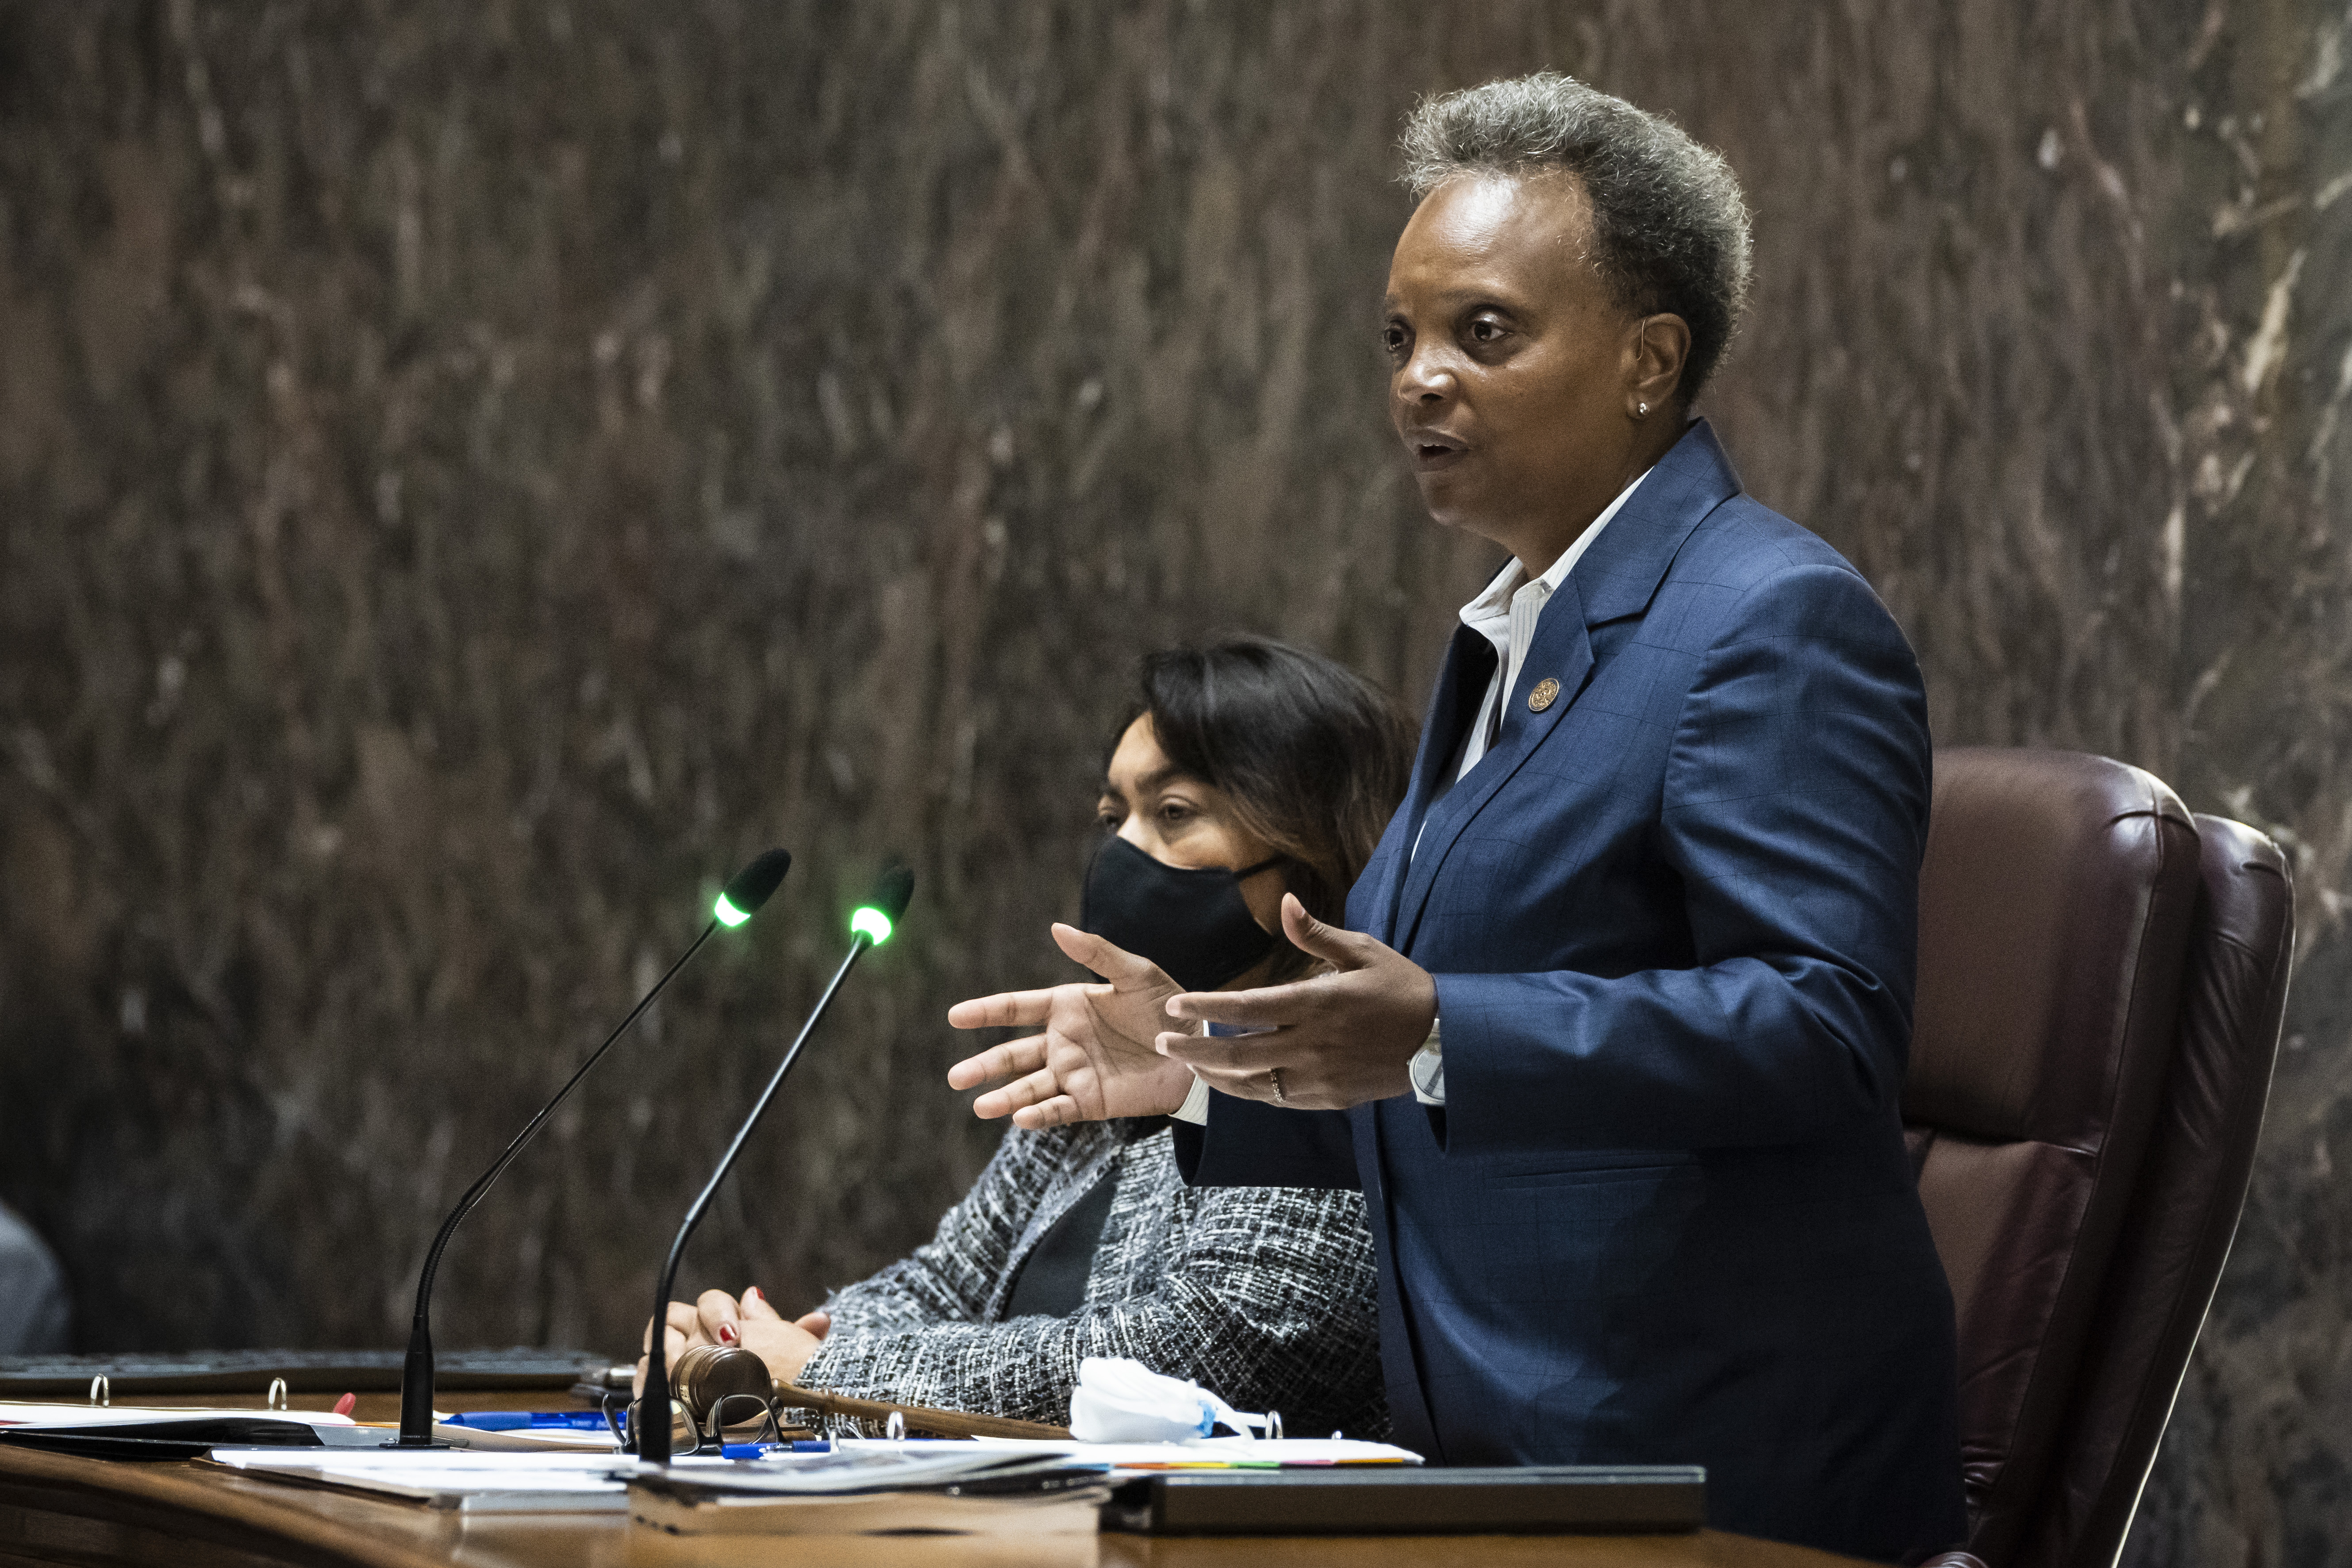 Mayor Lori Lightfoot presides over a Chicago City Council meeting at City Hall, Monday morning, Sept. 20, 2021.